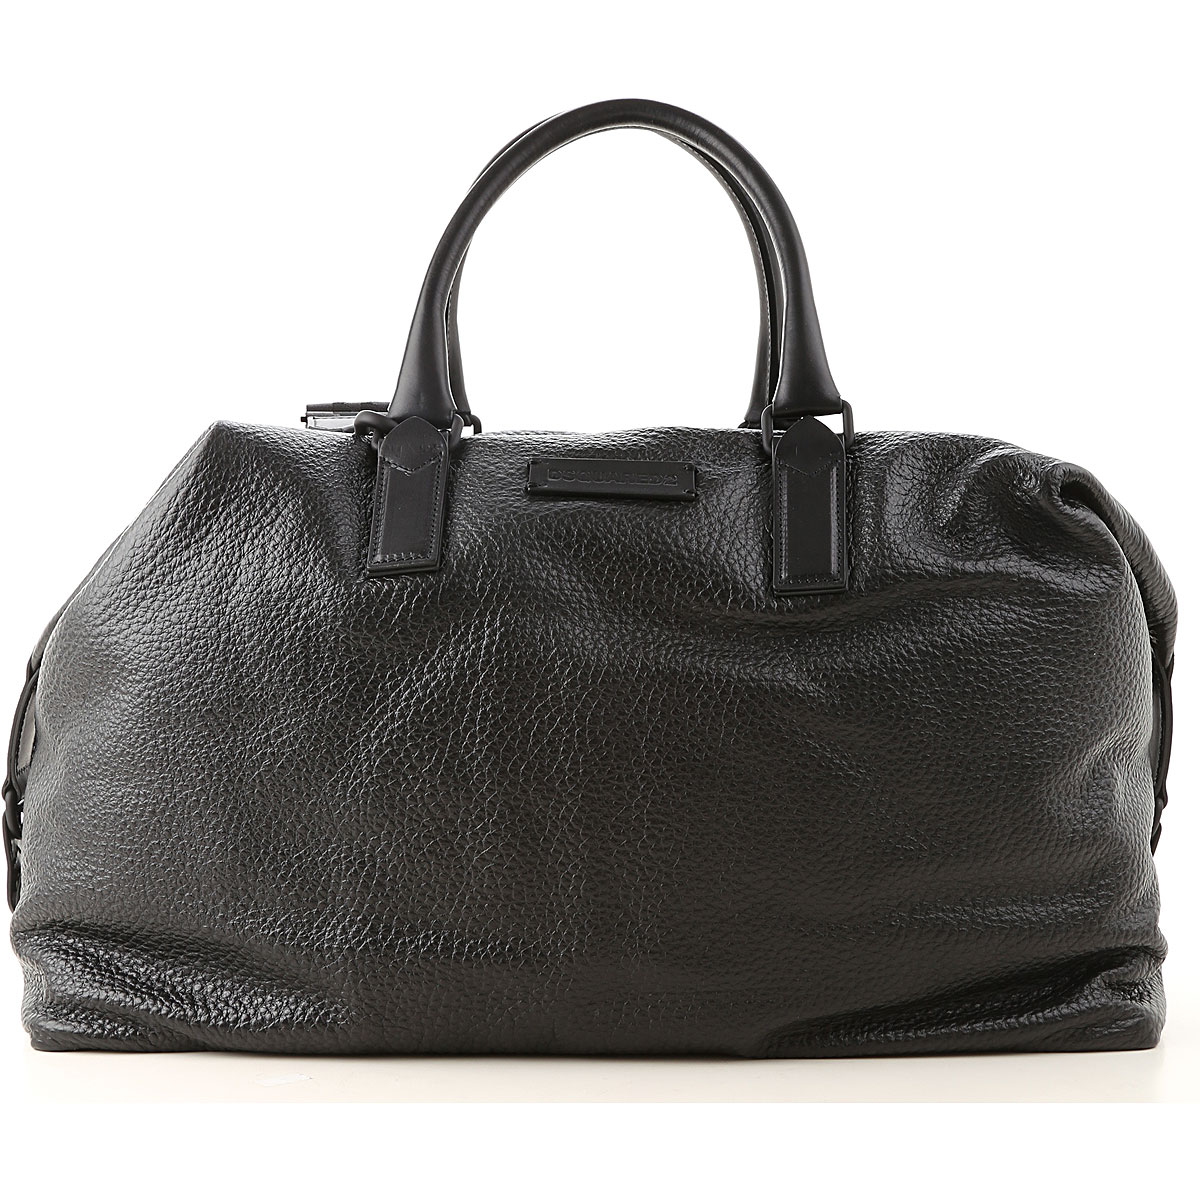 Dsquared2 Weekender Duffel Bag for Men, Black, Leather, 2019